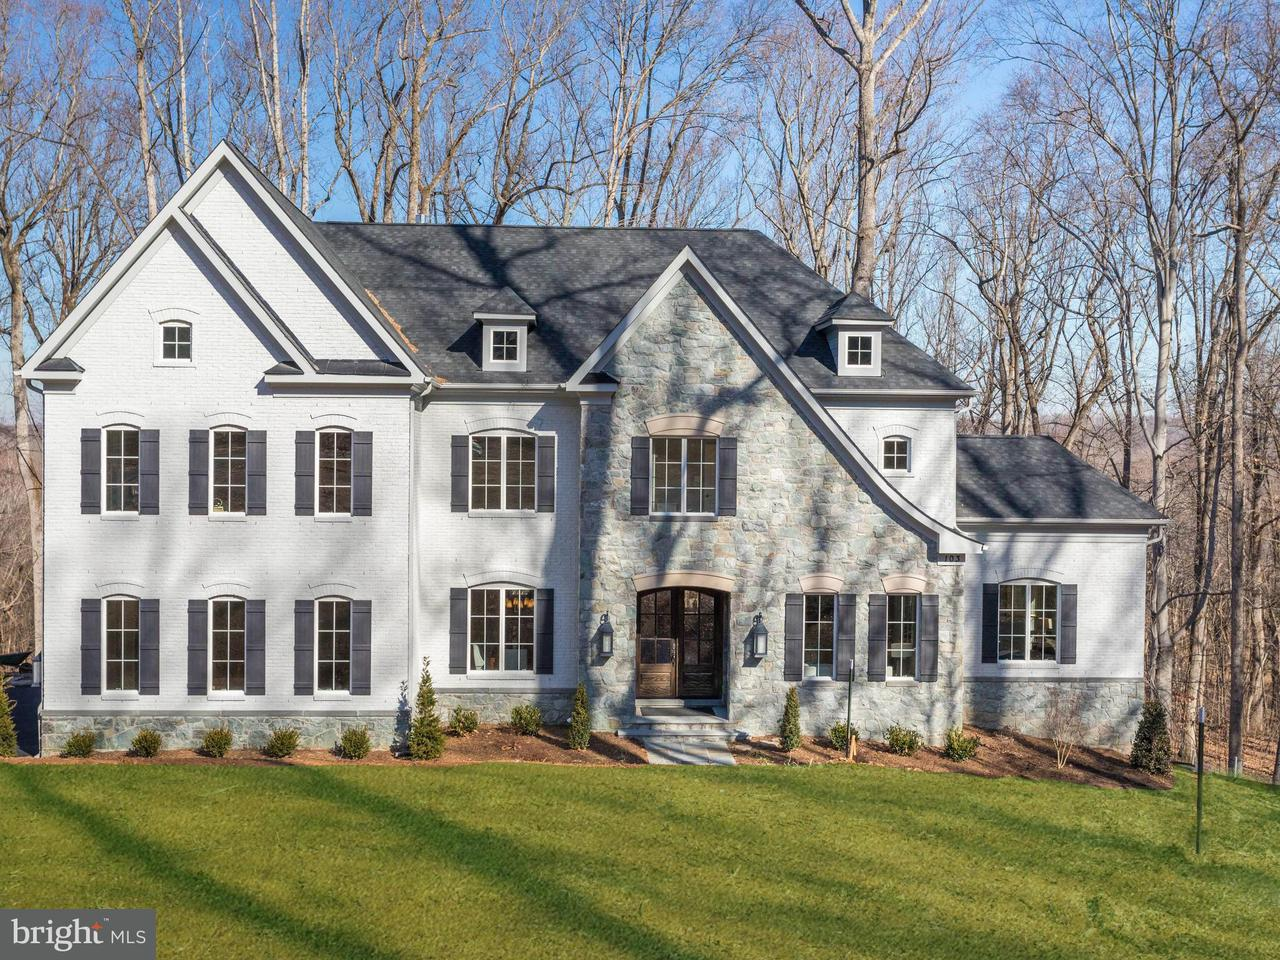 Single Family Home for Sale at 103 Interpromontory Road 103 Interpromontory Road Great Falls, Virginia 22066 United States